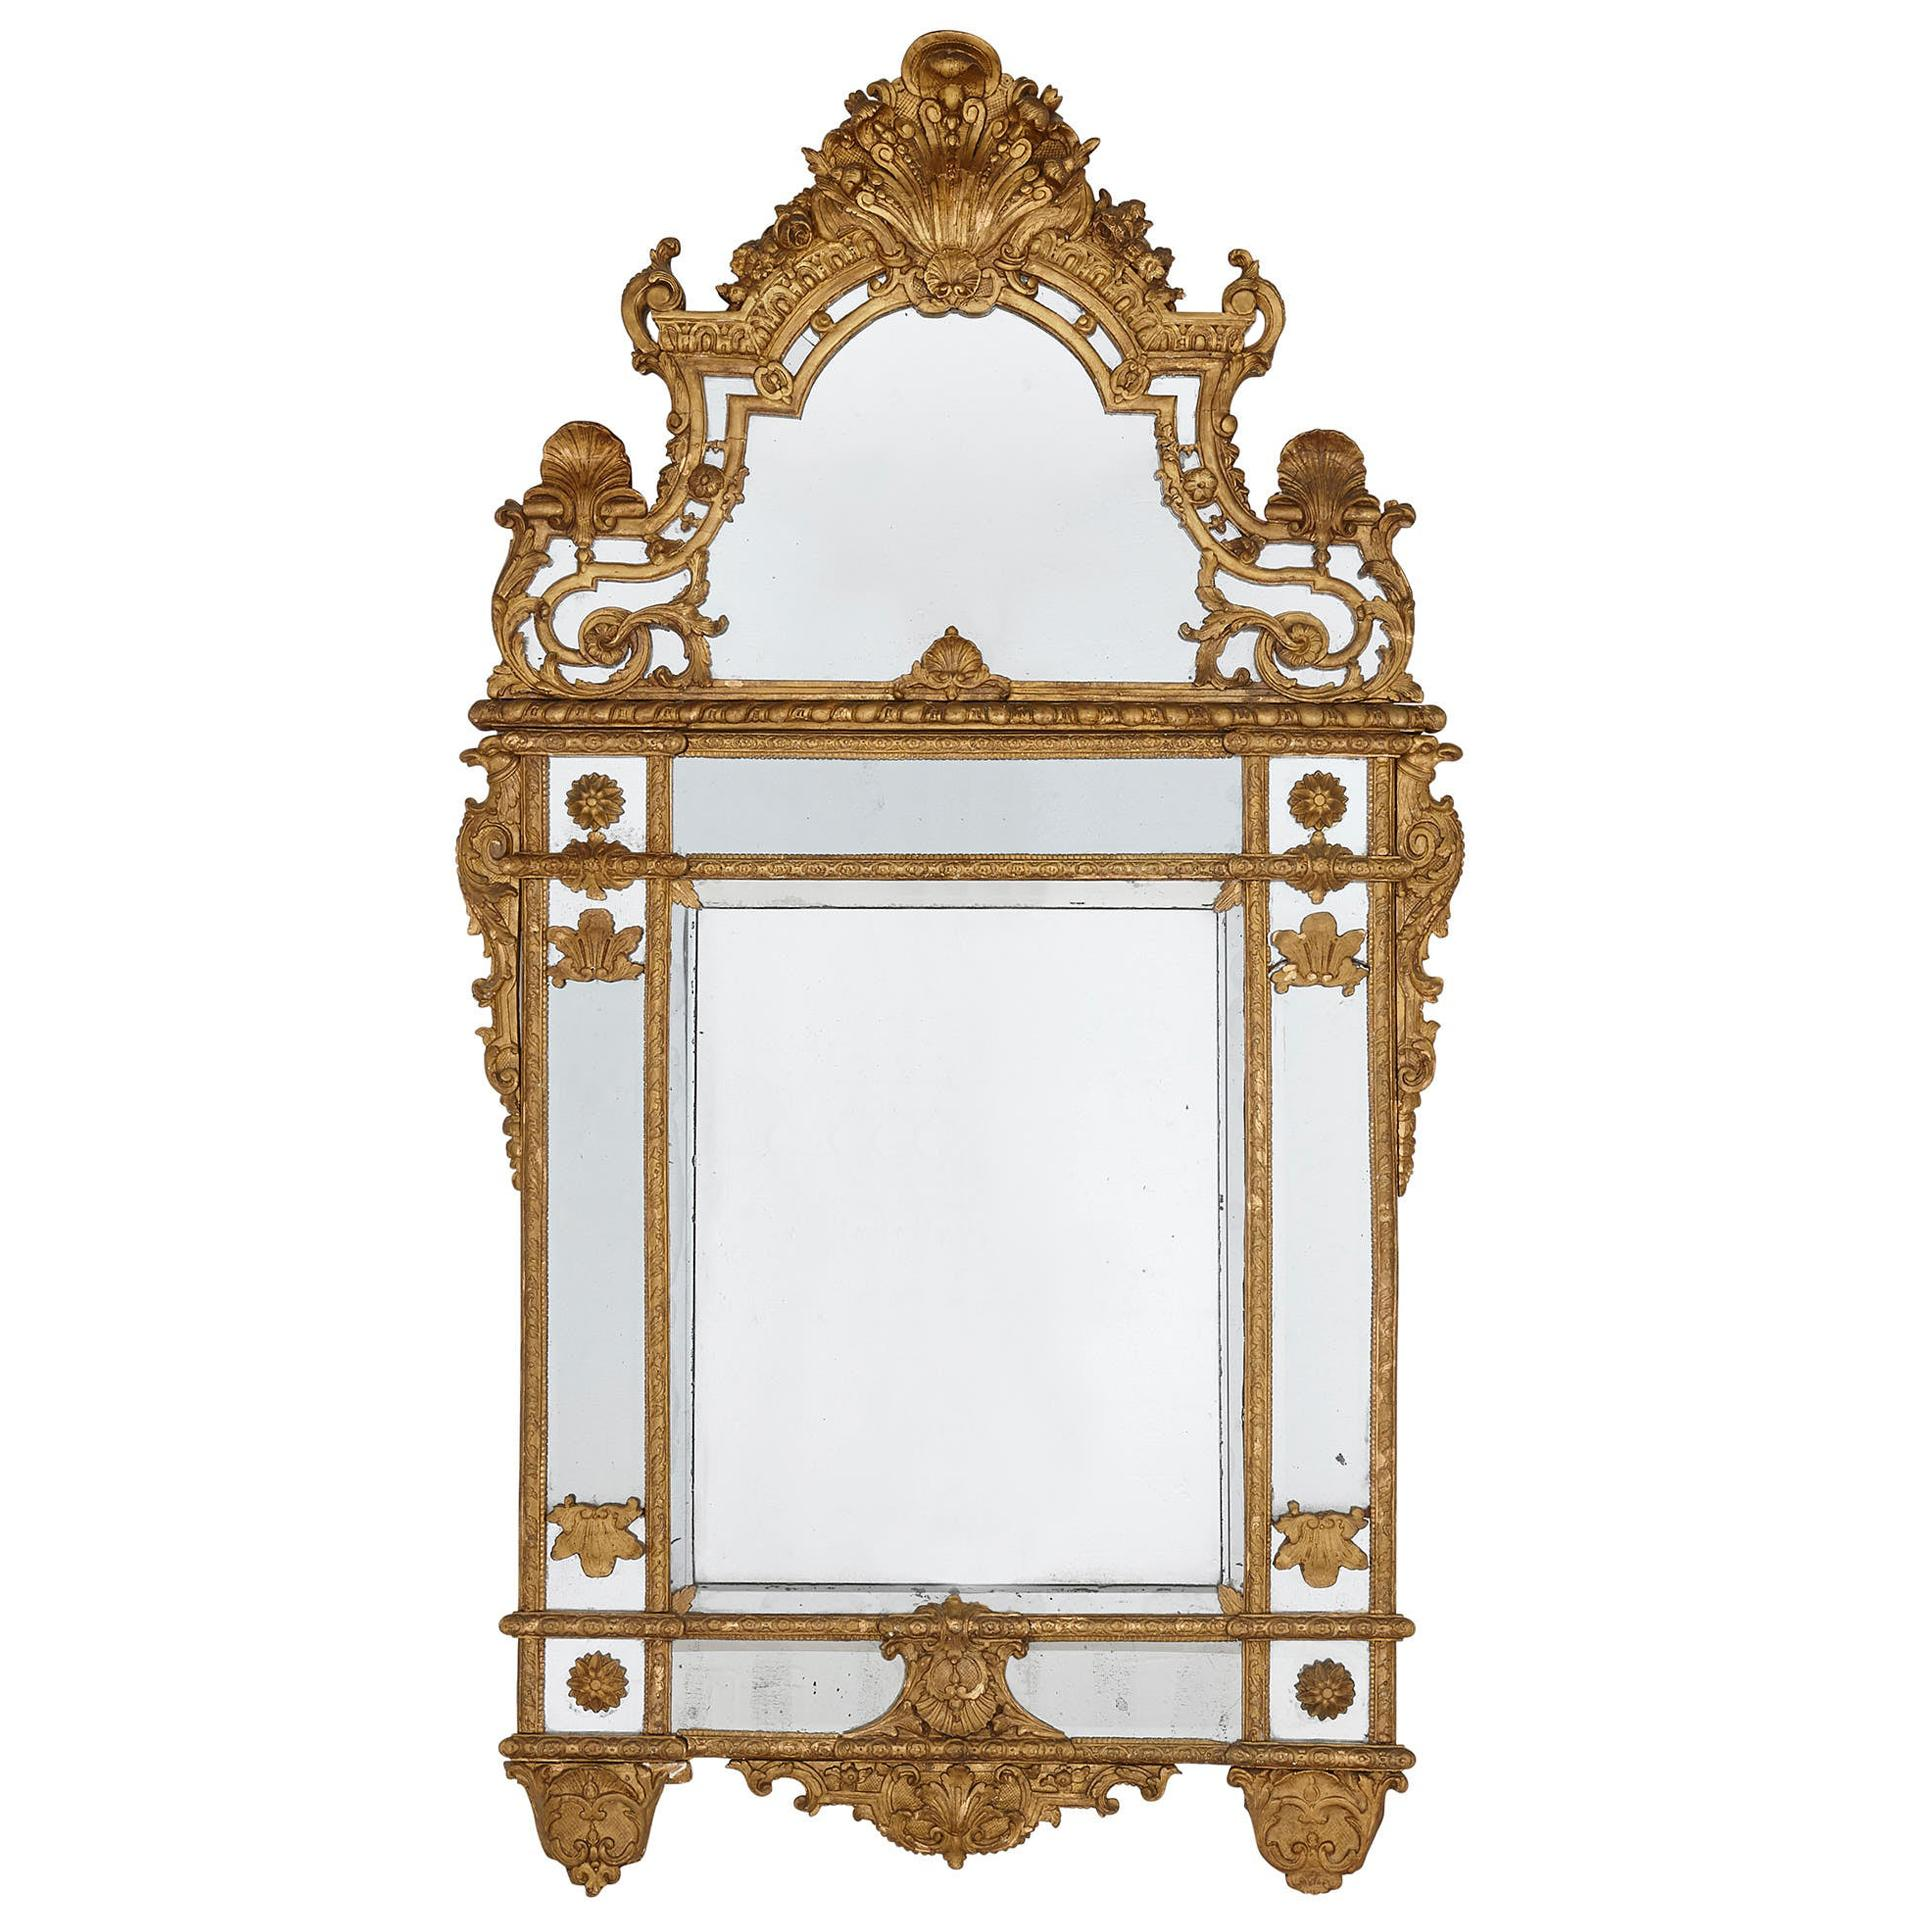 19th Century French Carved Giltwood Mirror in the Régence Style